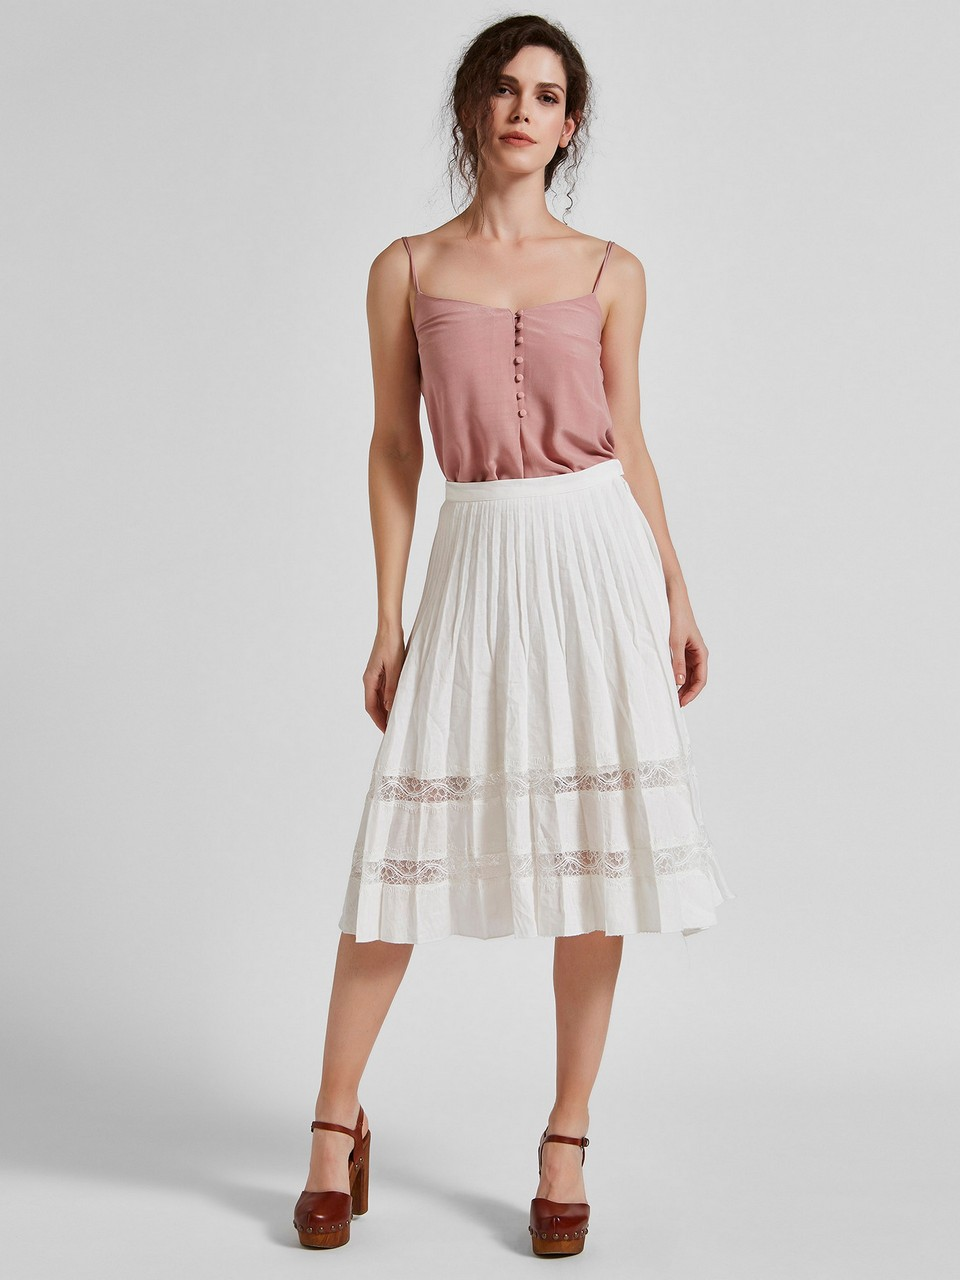 Lace Detailed Frilly Linen Skirt